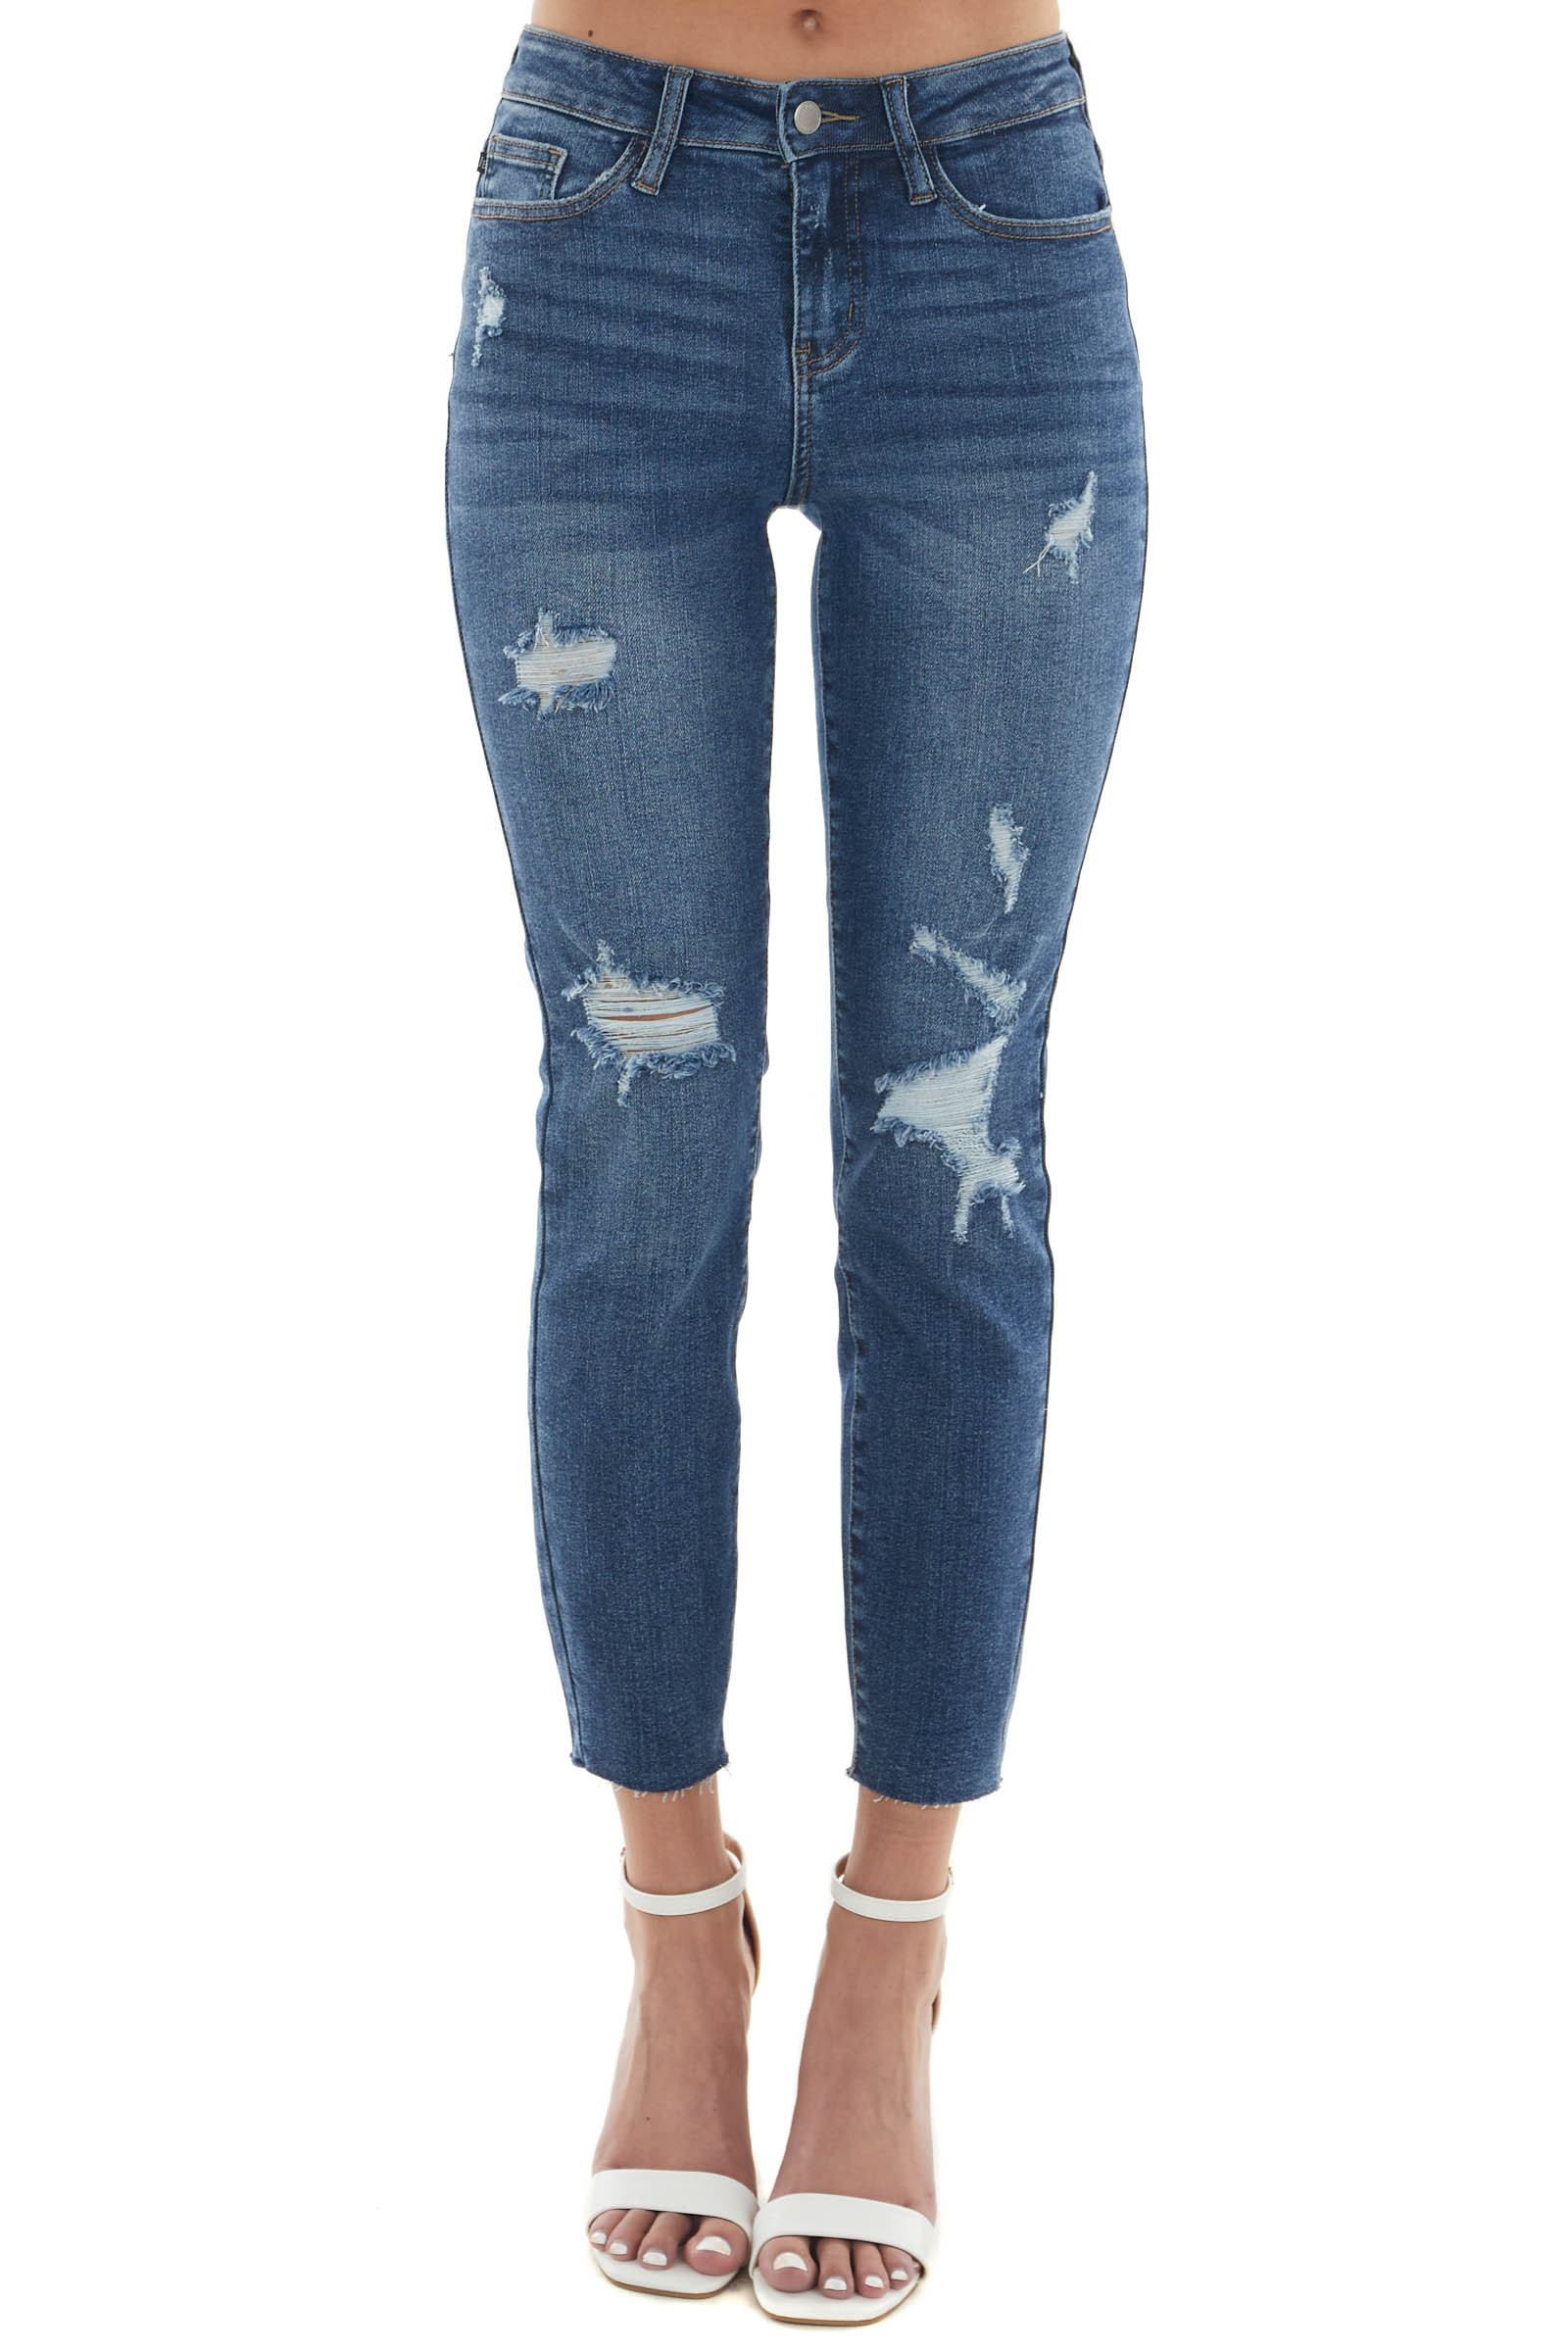 Medium Wash Mid Rise Vintage Relaxed Fit Jeans